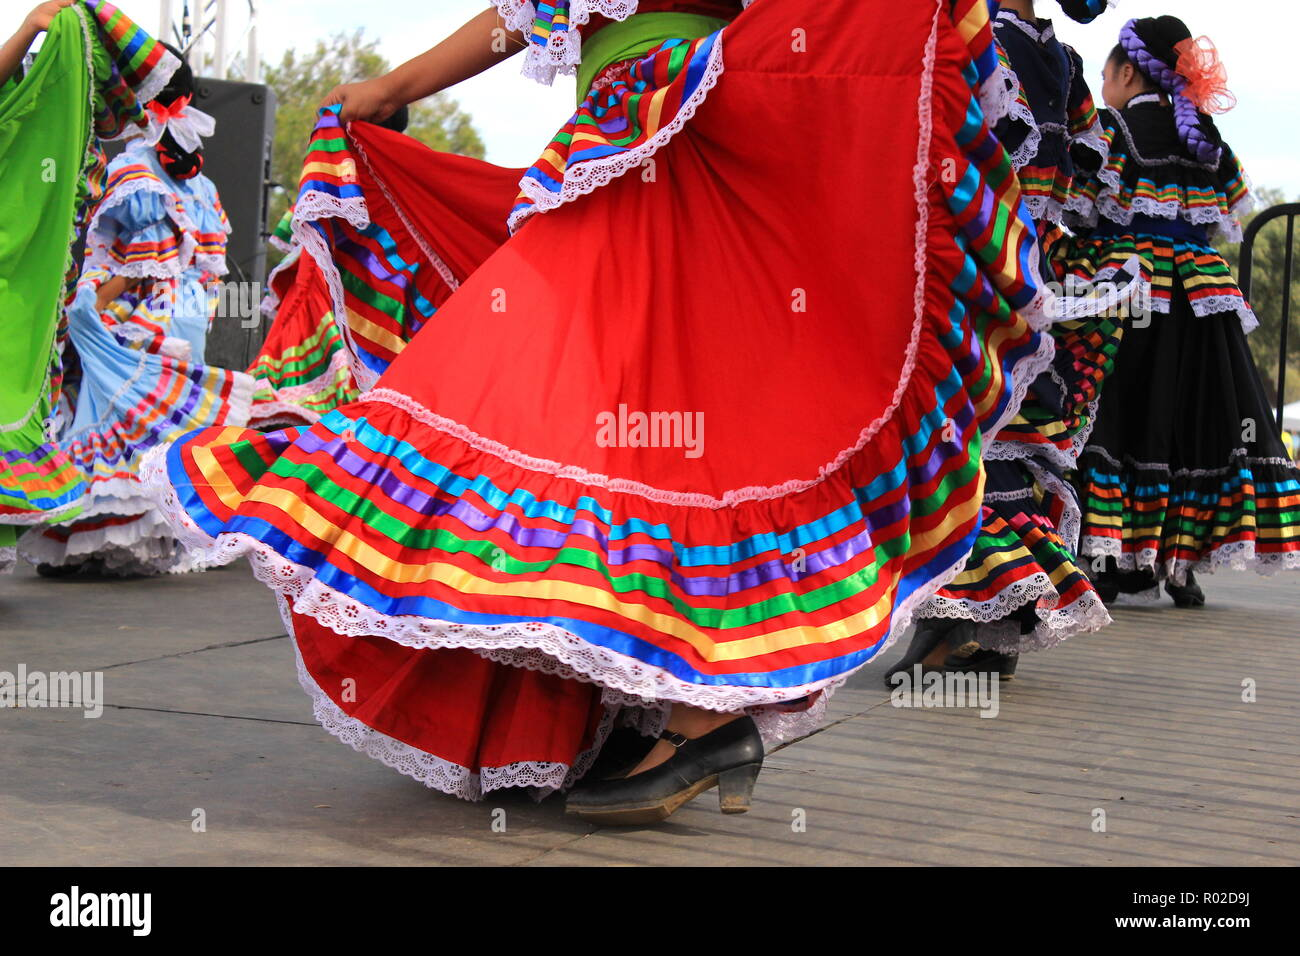 Colorful skirts fly during traditional Mexican dancing - Stock Image